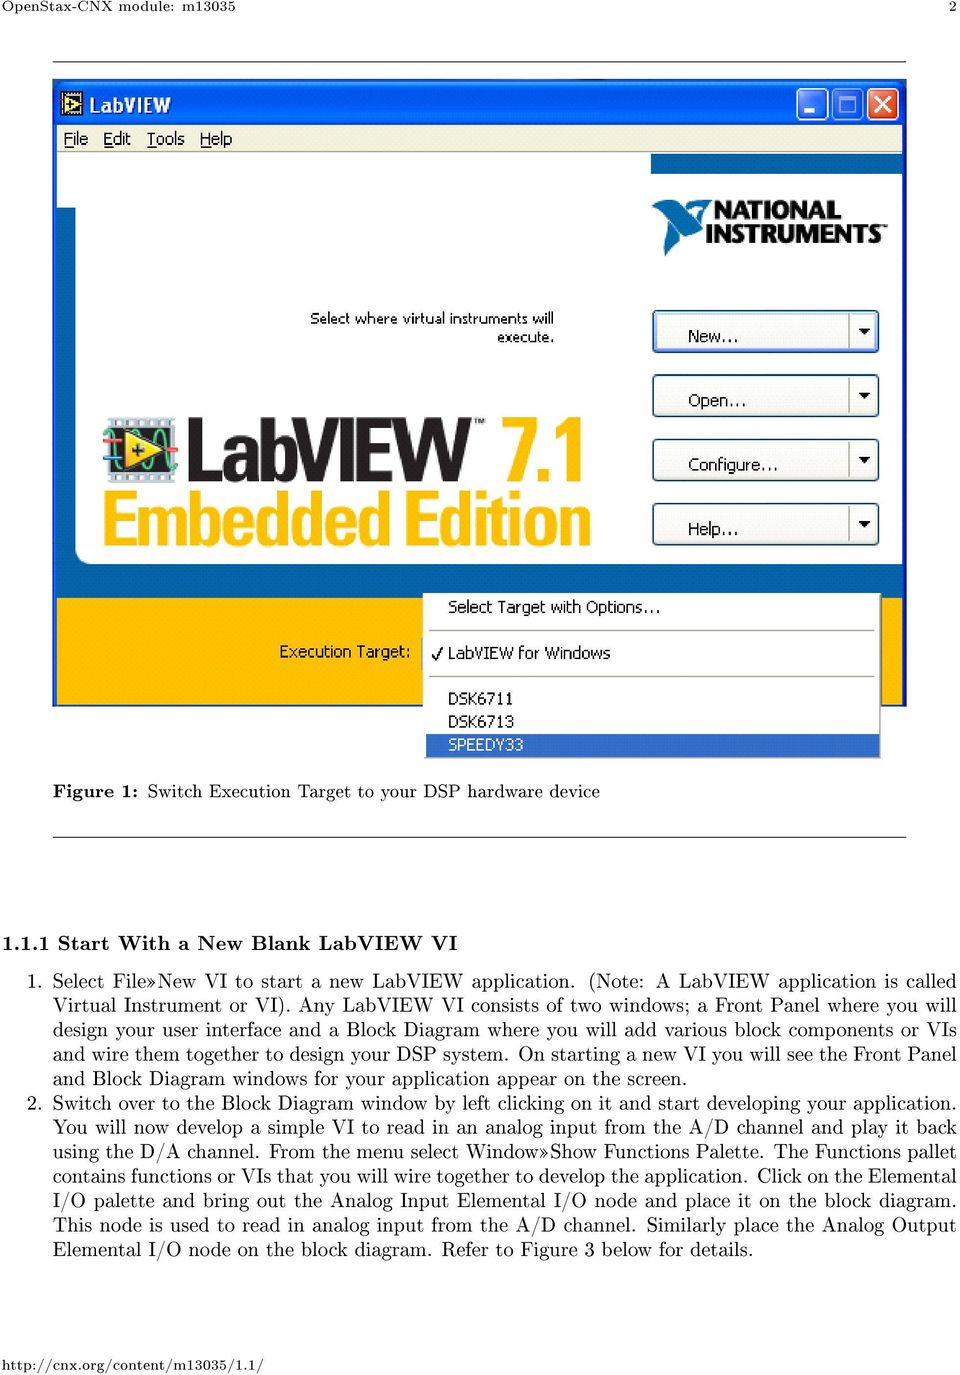 Any LabVIEW VI consists of two windows; a Front Panel where you will design your user interface and a Block Diagram where you will add various block components or VIs and wire them together to design